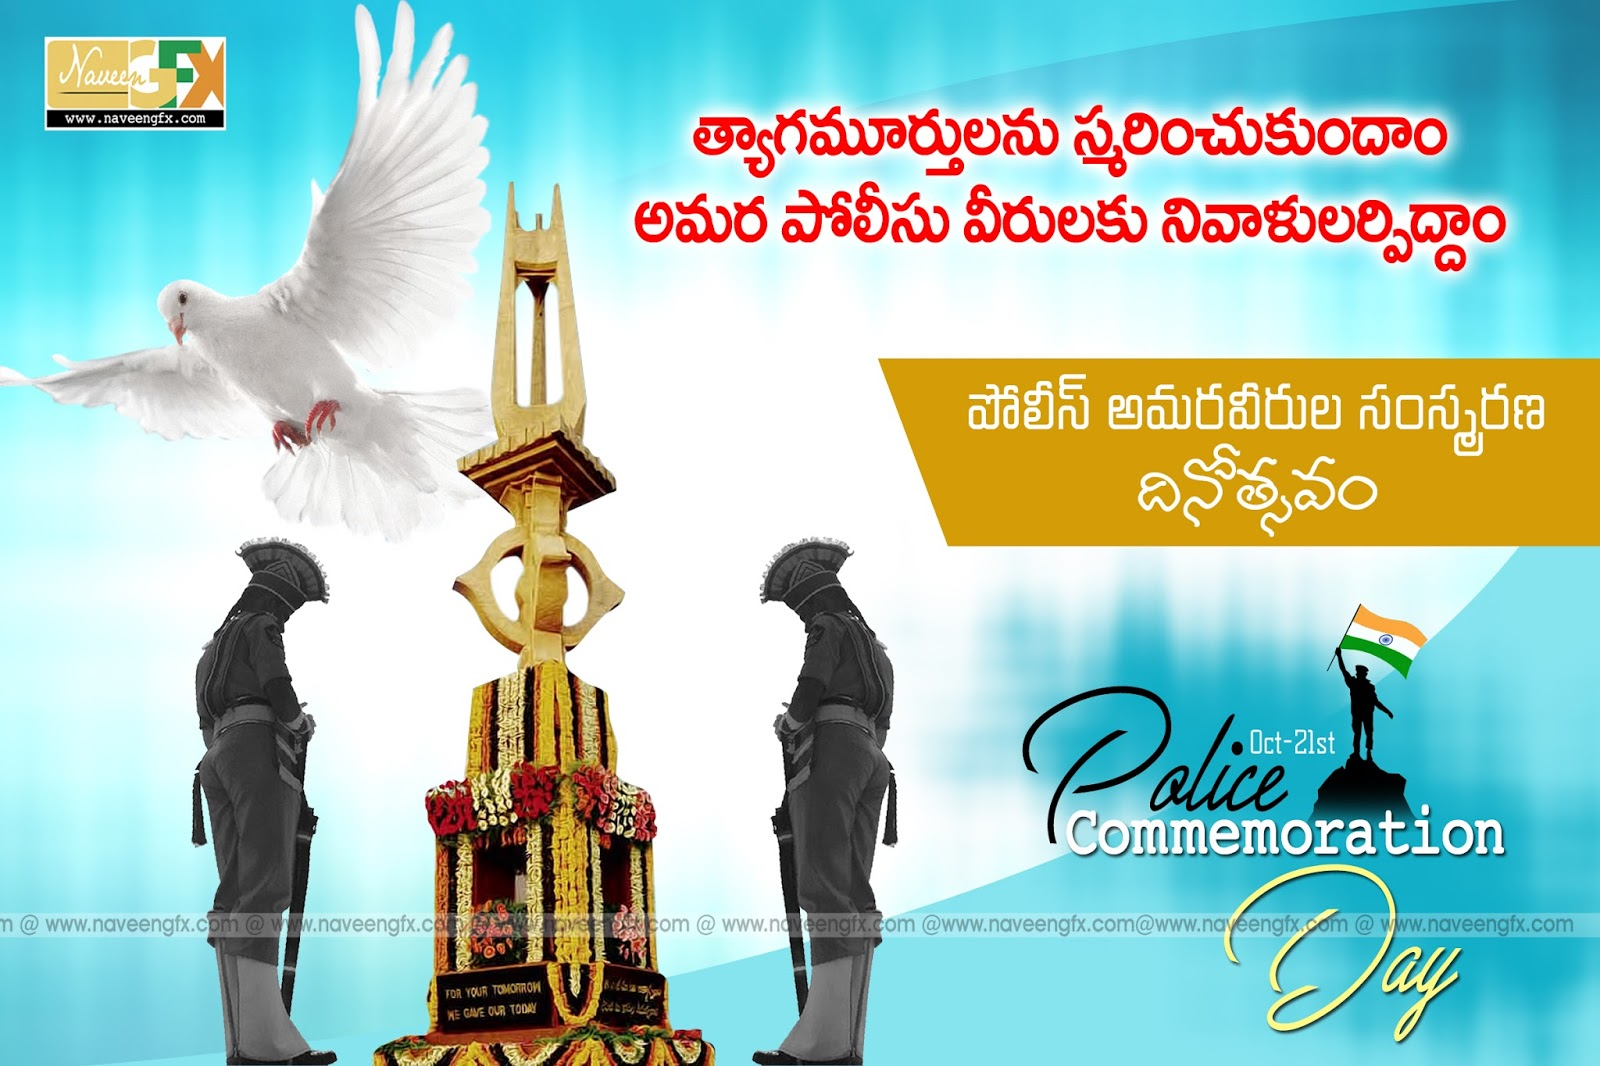 Police Commemoration Day Telugu Poster And Slogans Naveengfx